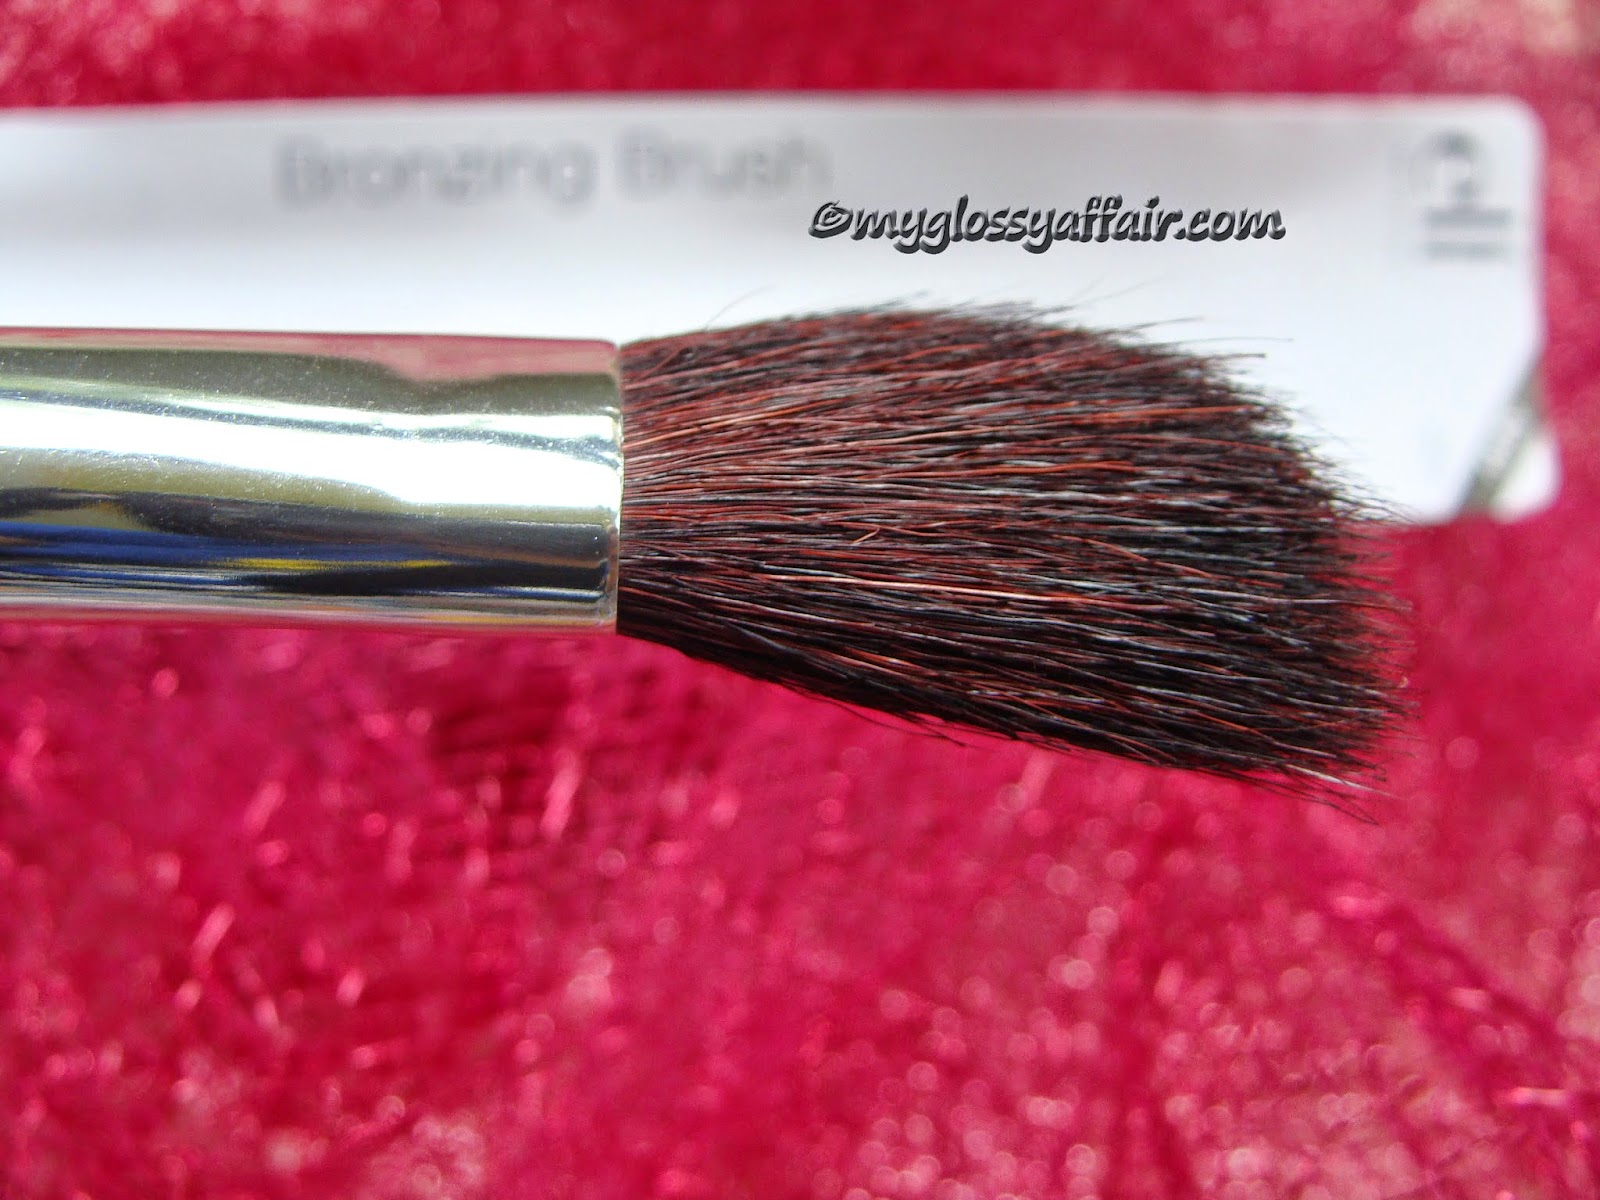 Elf Professional Bronzing Brush Review